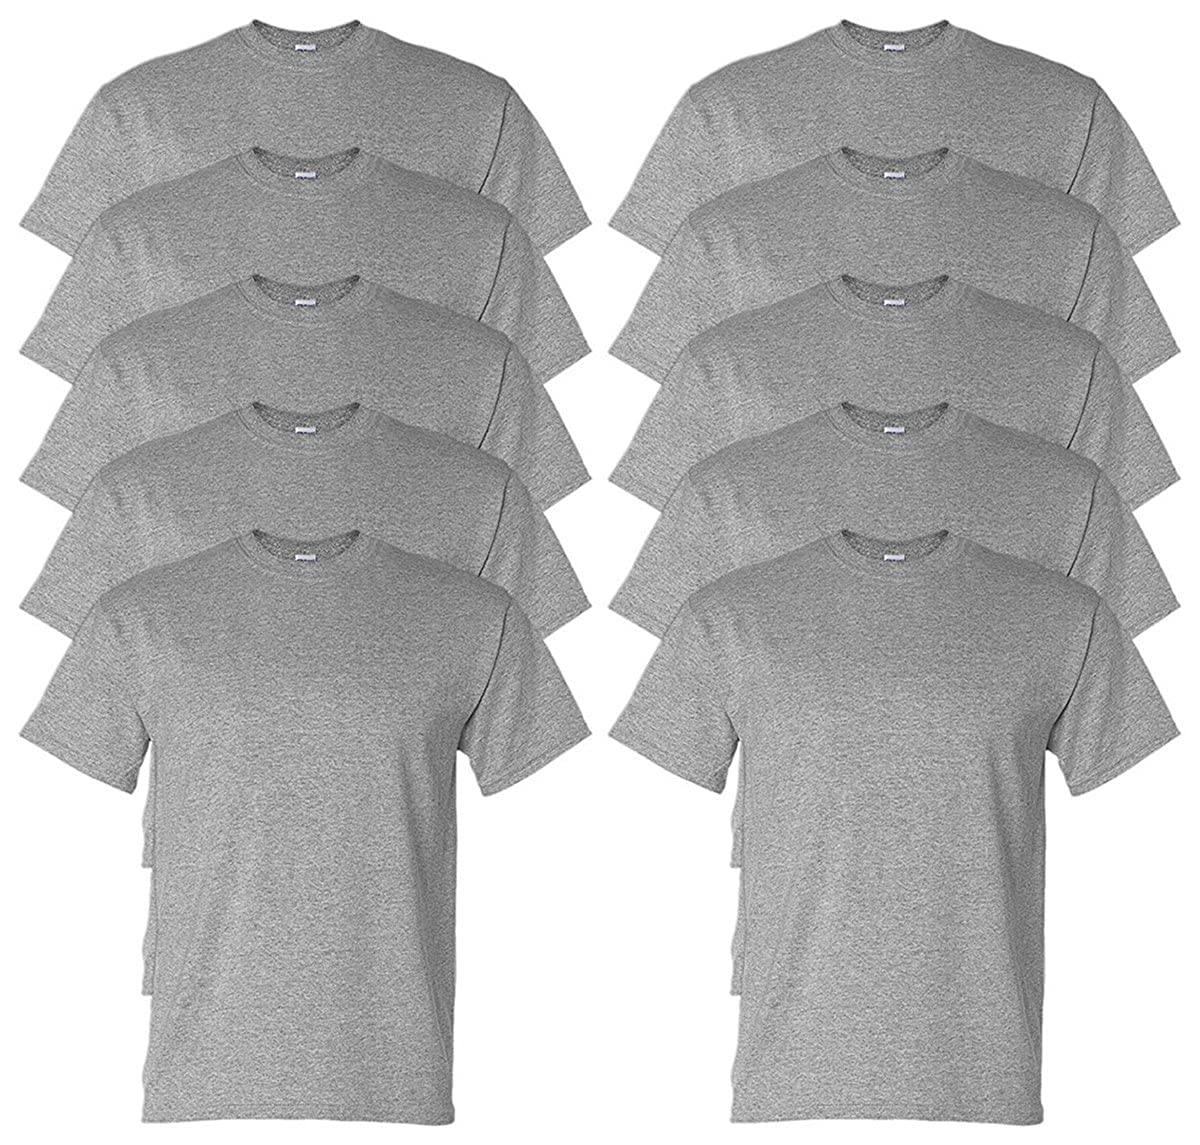 Gildan Adult DryBlend Sports T-Shirt Pack of 10 M Sport Grey